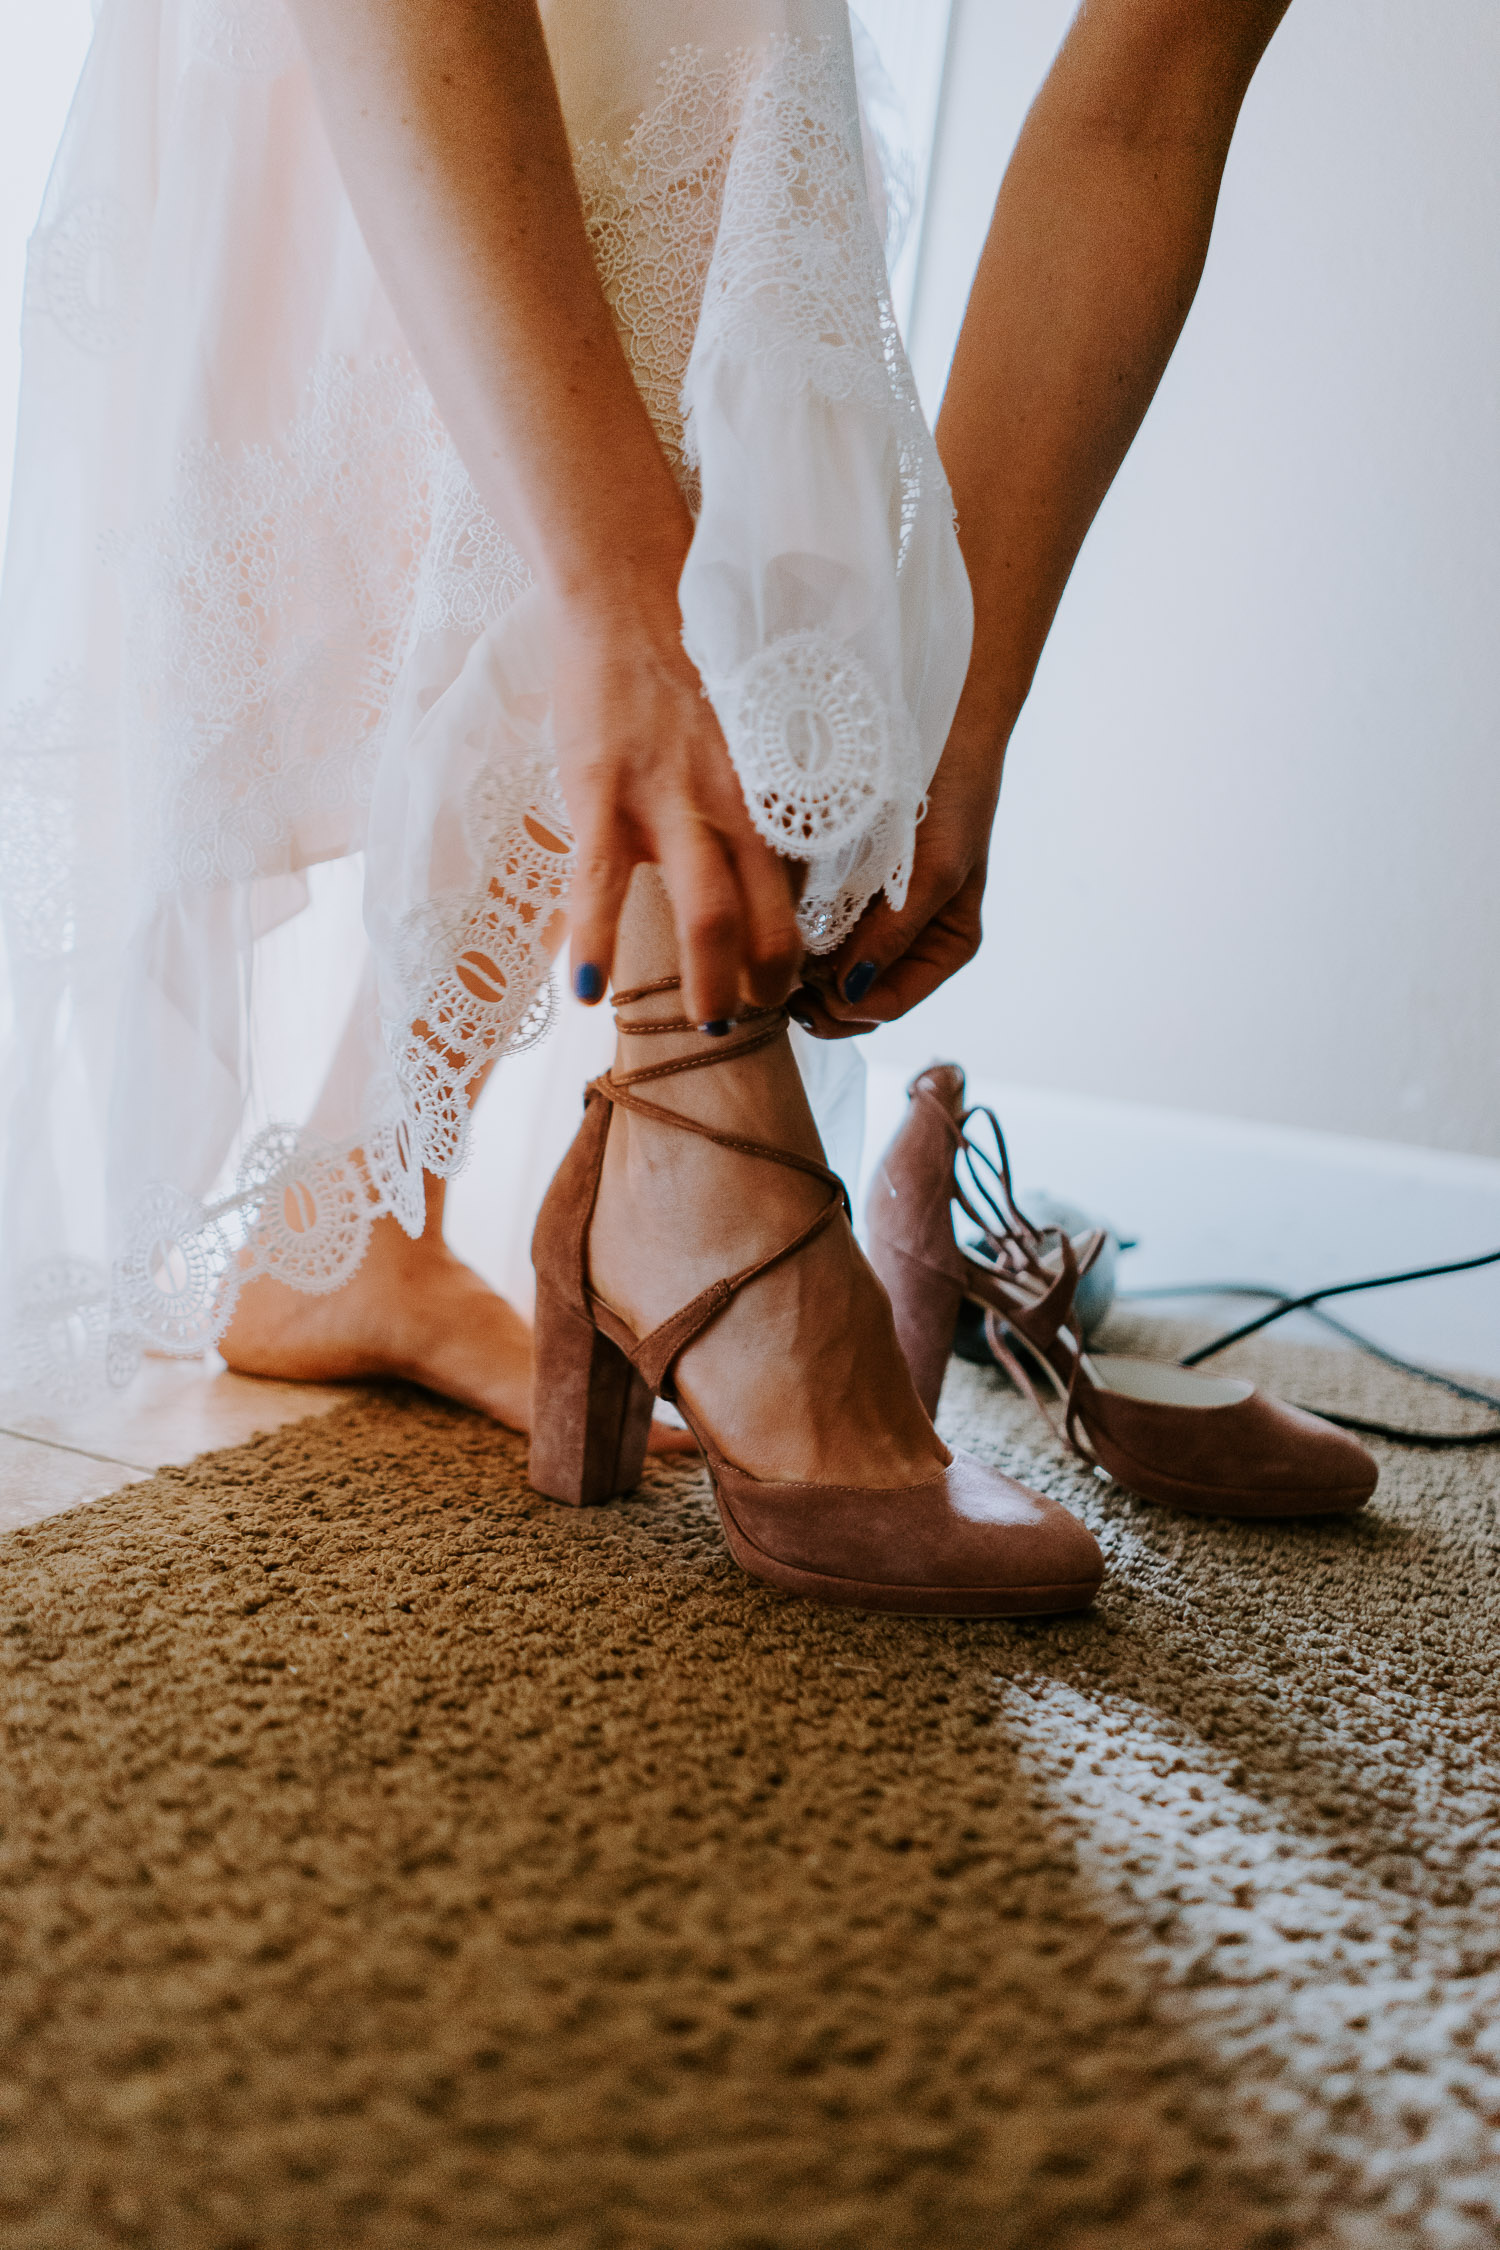 Colorado Wedding Photography, Intimate Wedding, Colorado elopement photography, crested butte wedding, bride putting on shoes